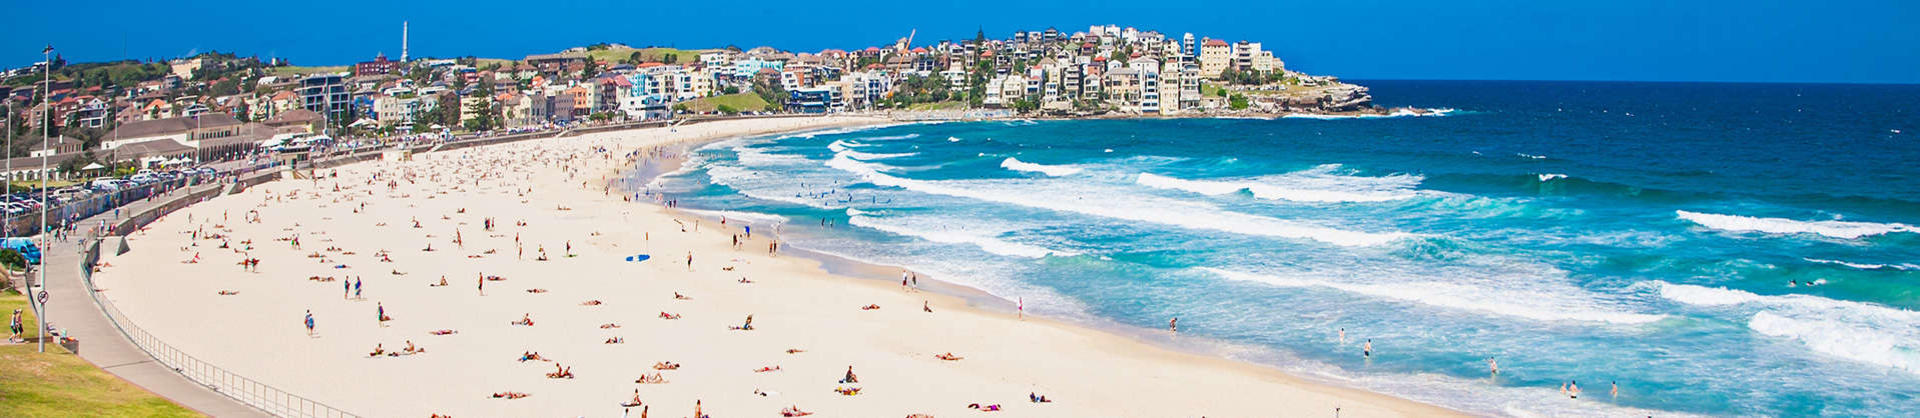 An aerial view of Bondi Beach in Sydney